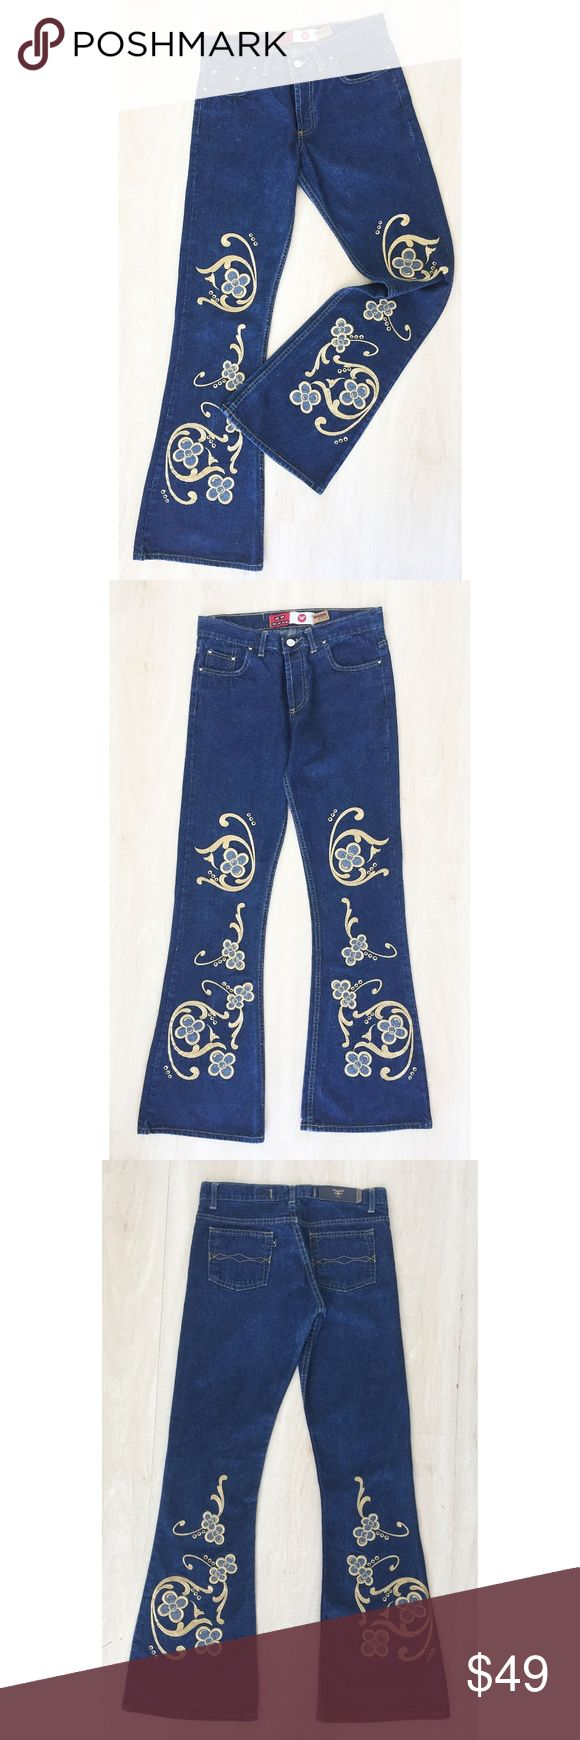 """Kosiuko Vintage Denim Jeans Gold Embroidery Sz:27 Kosiuko Vintage Denim Jeans w Gold Embroidery Size 27 Pre Owned-Excellent Condition Waist : 15"""" Hips: 19"""" Length: 39.5"""" Rise:9.5"""" Inseam: 32"""" Kosiuko Jeans Flare & Wide Leg"""